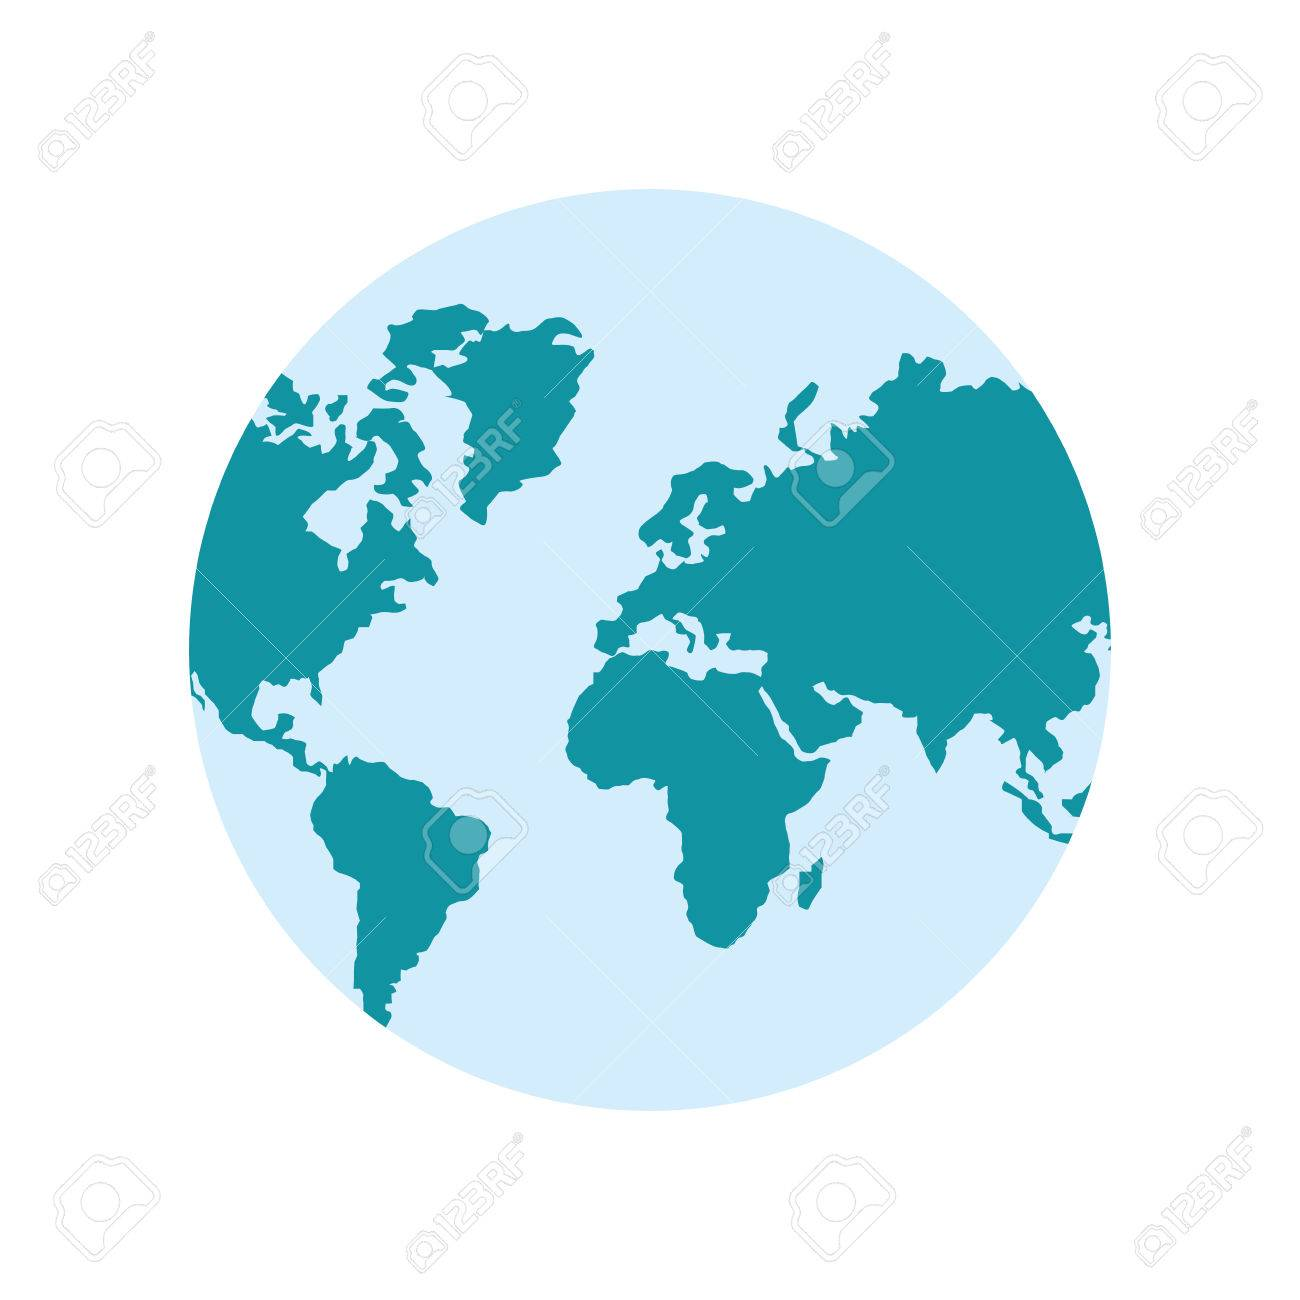 Planet earth world map cartography icon flat and isolated design planet earth world map cartography icon flat and isolated design vector illustration stock vector gumiabroncs Image collections